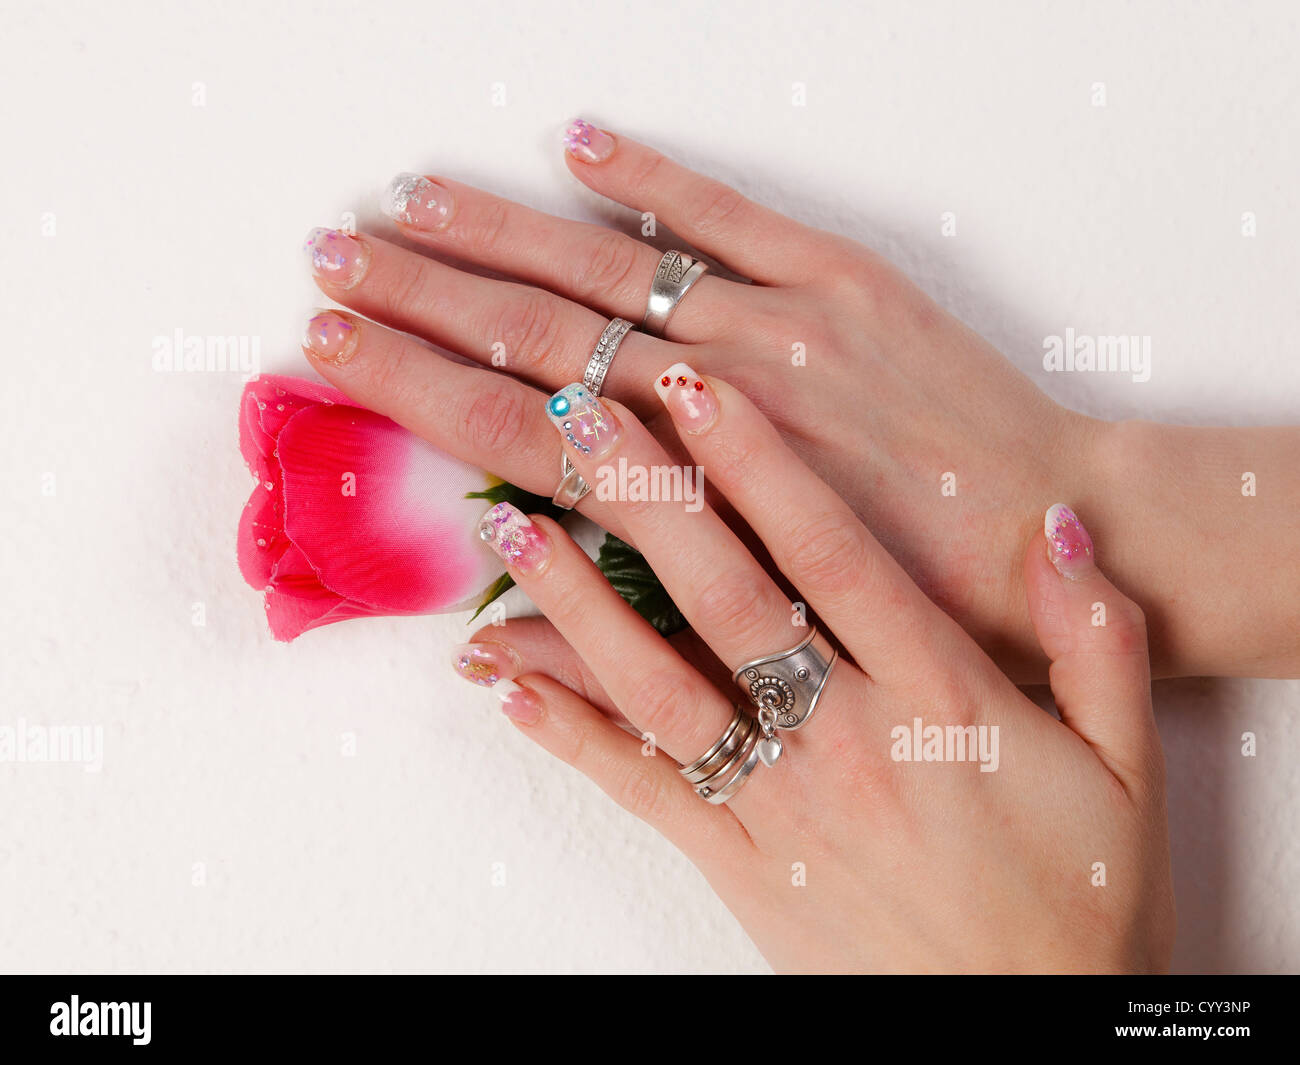 Fake gel nails in fingers Stock Photo: 51612114 - Alamy